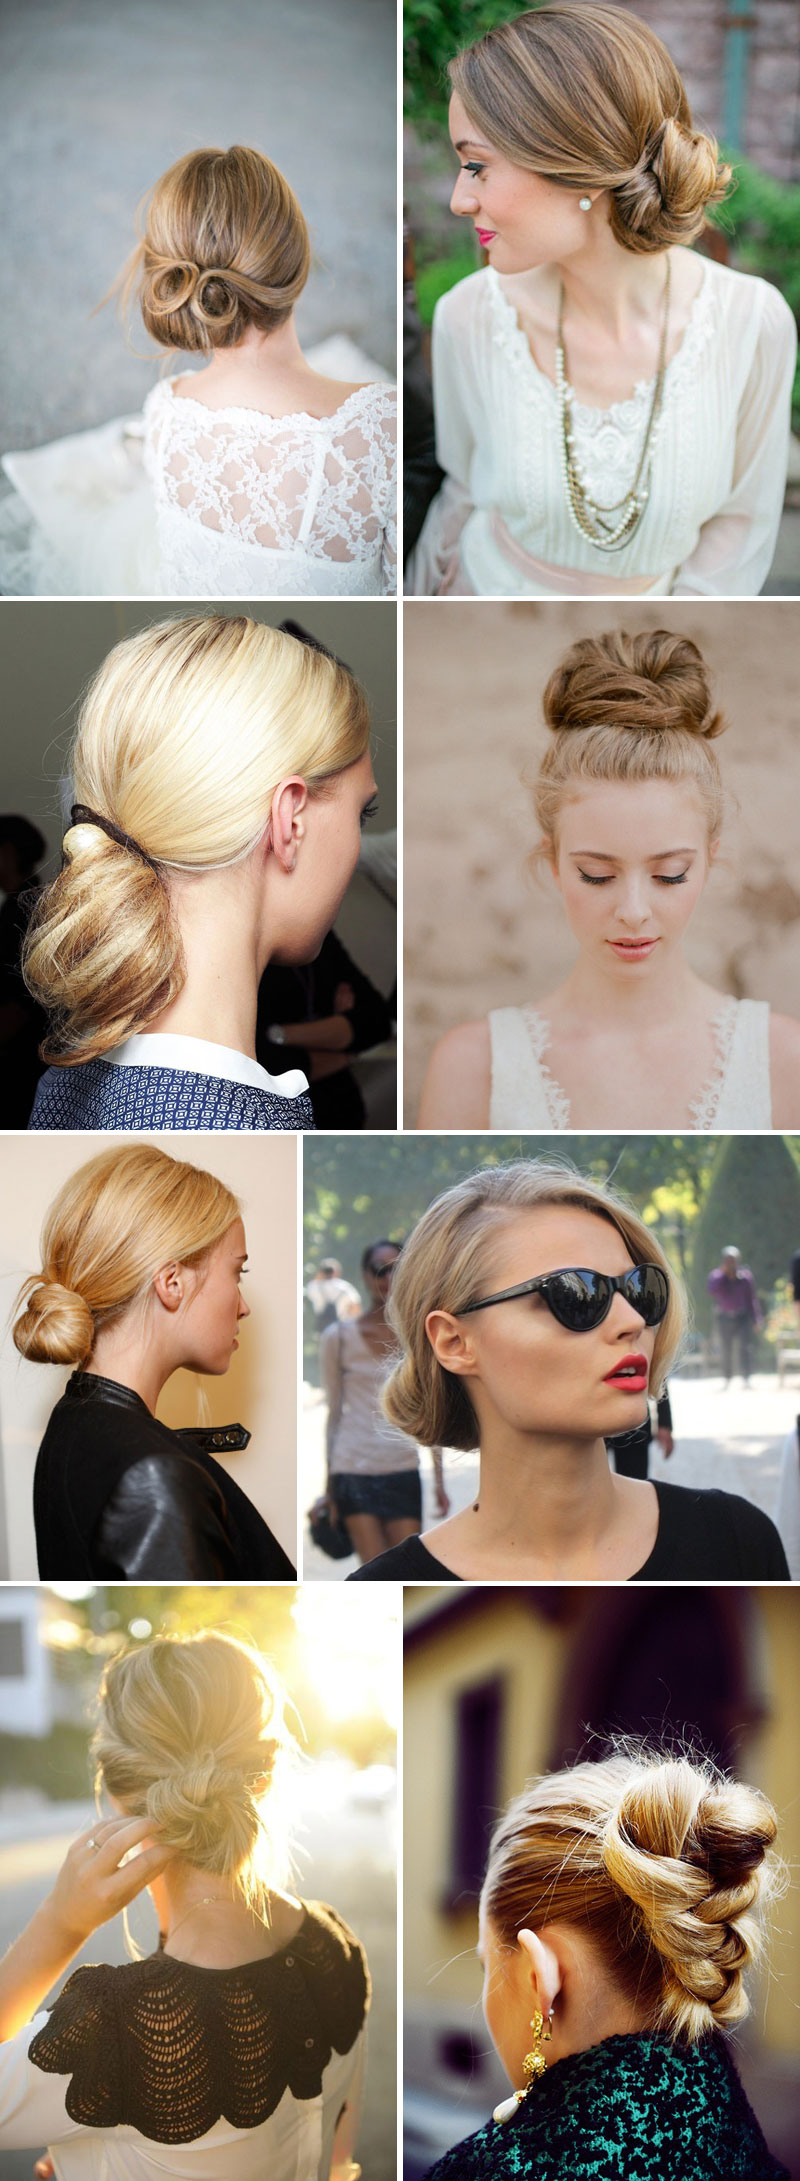 Chic Chignons Wedding Hair Inspiration